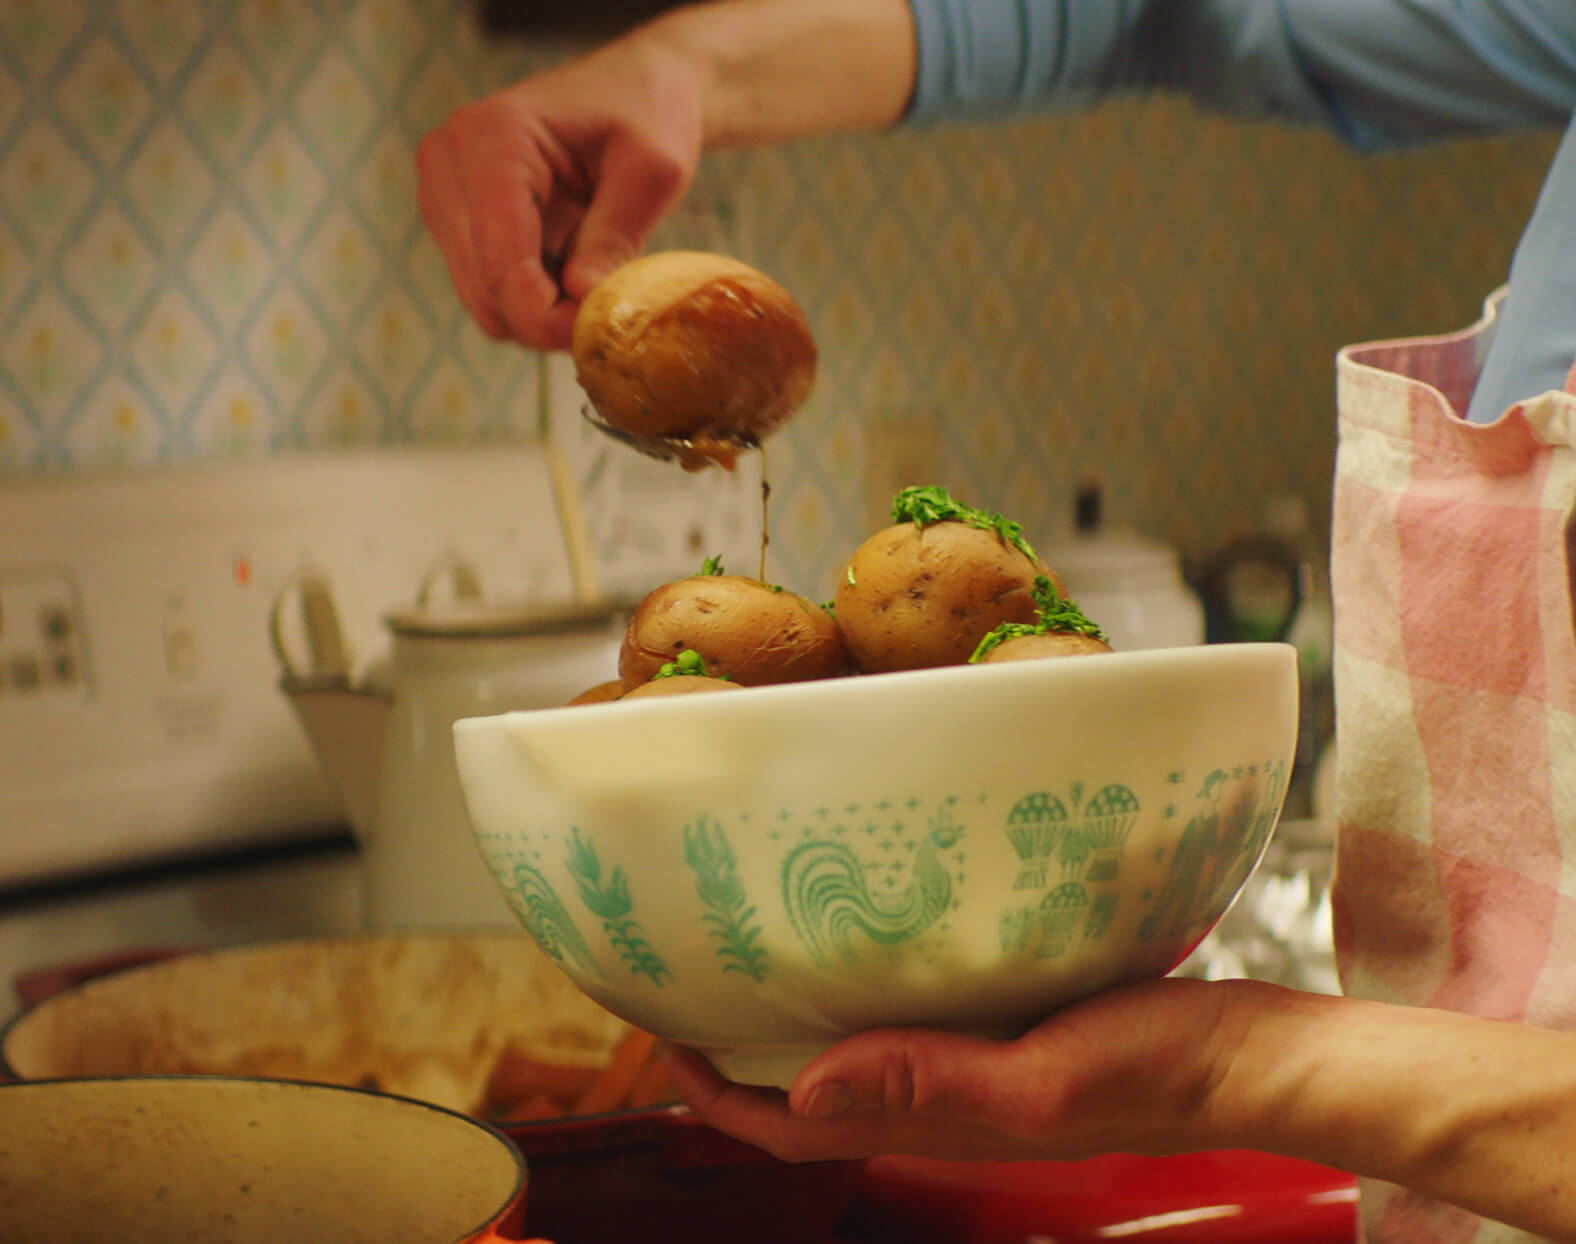 Karyn Tomlinson scooping potatoes out of a bowl.